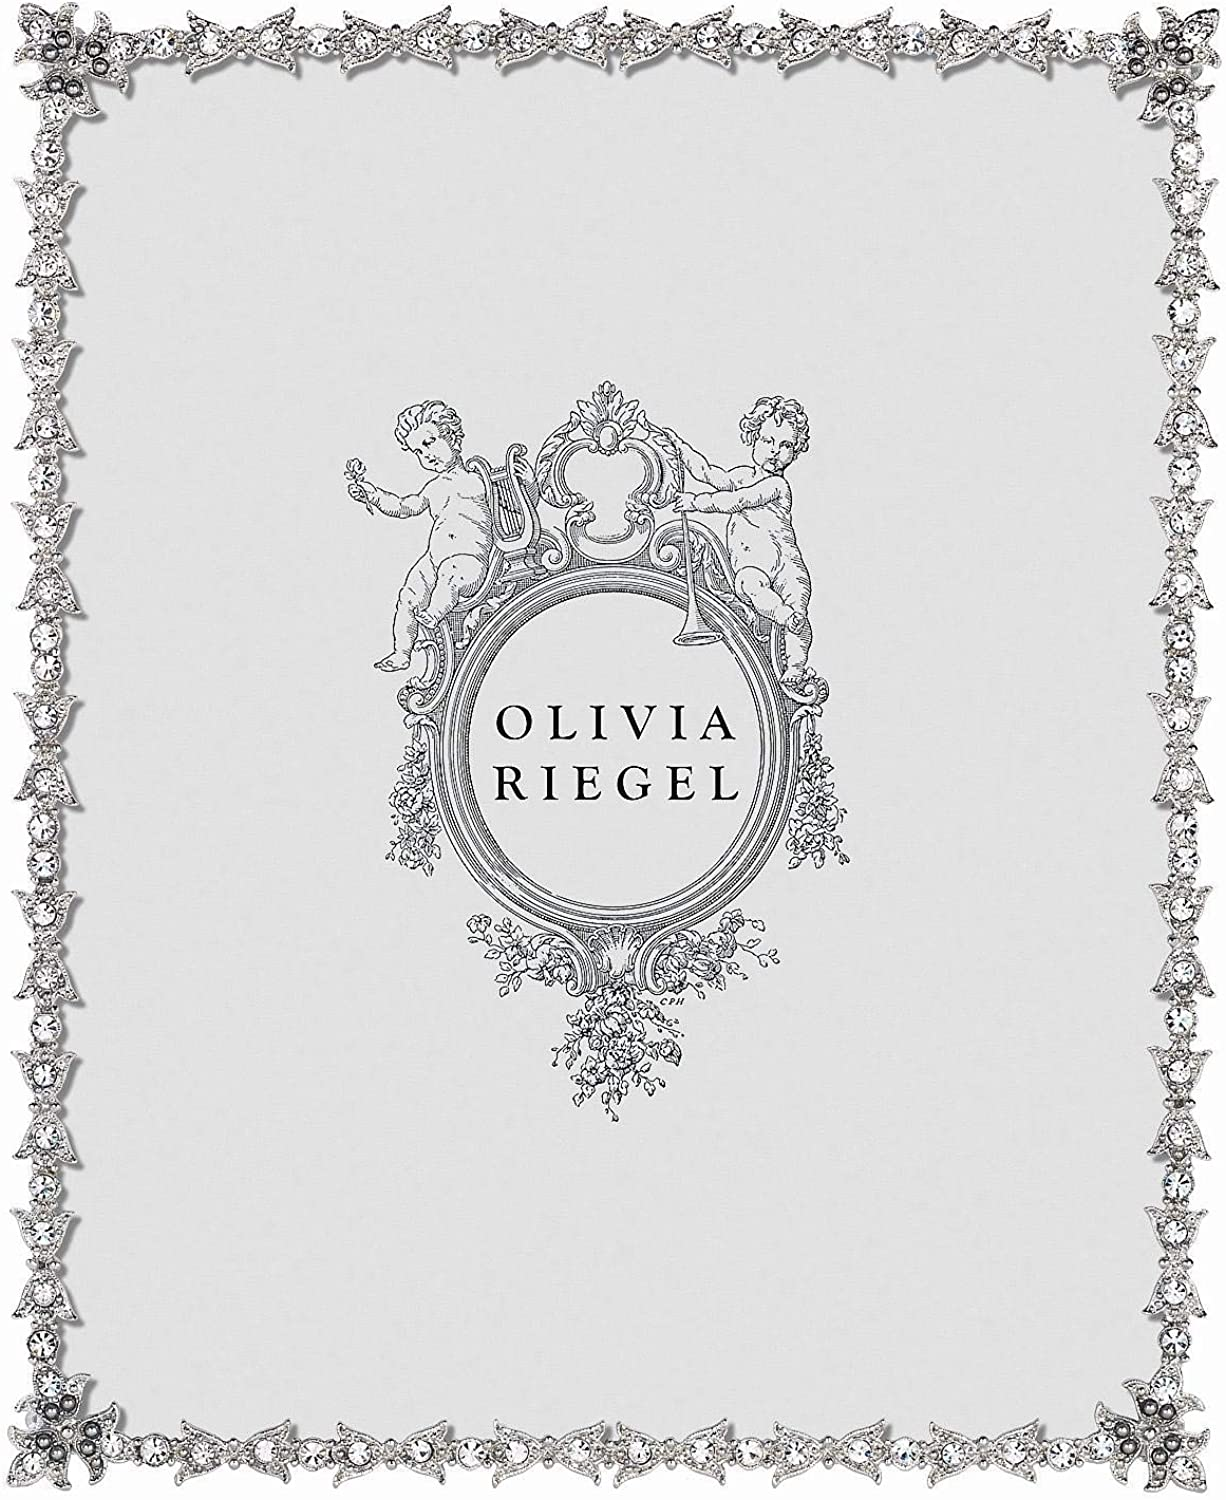 LUXEMBOURG Austrian Crystal 8x10 frame by Olivia Riegel - 8x10